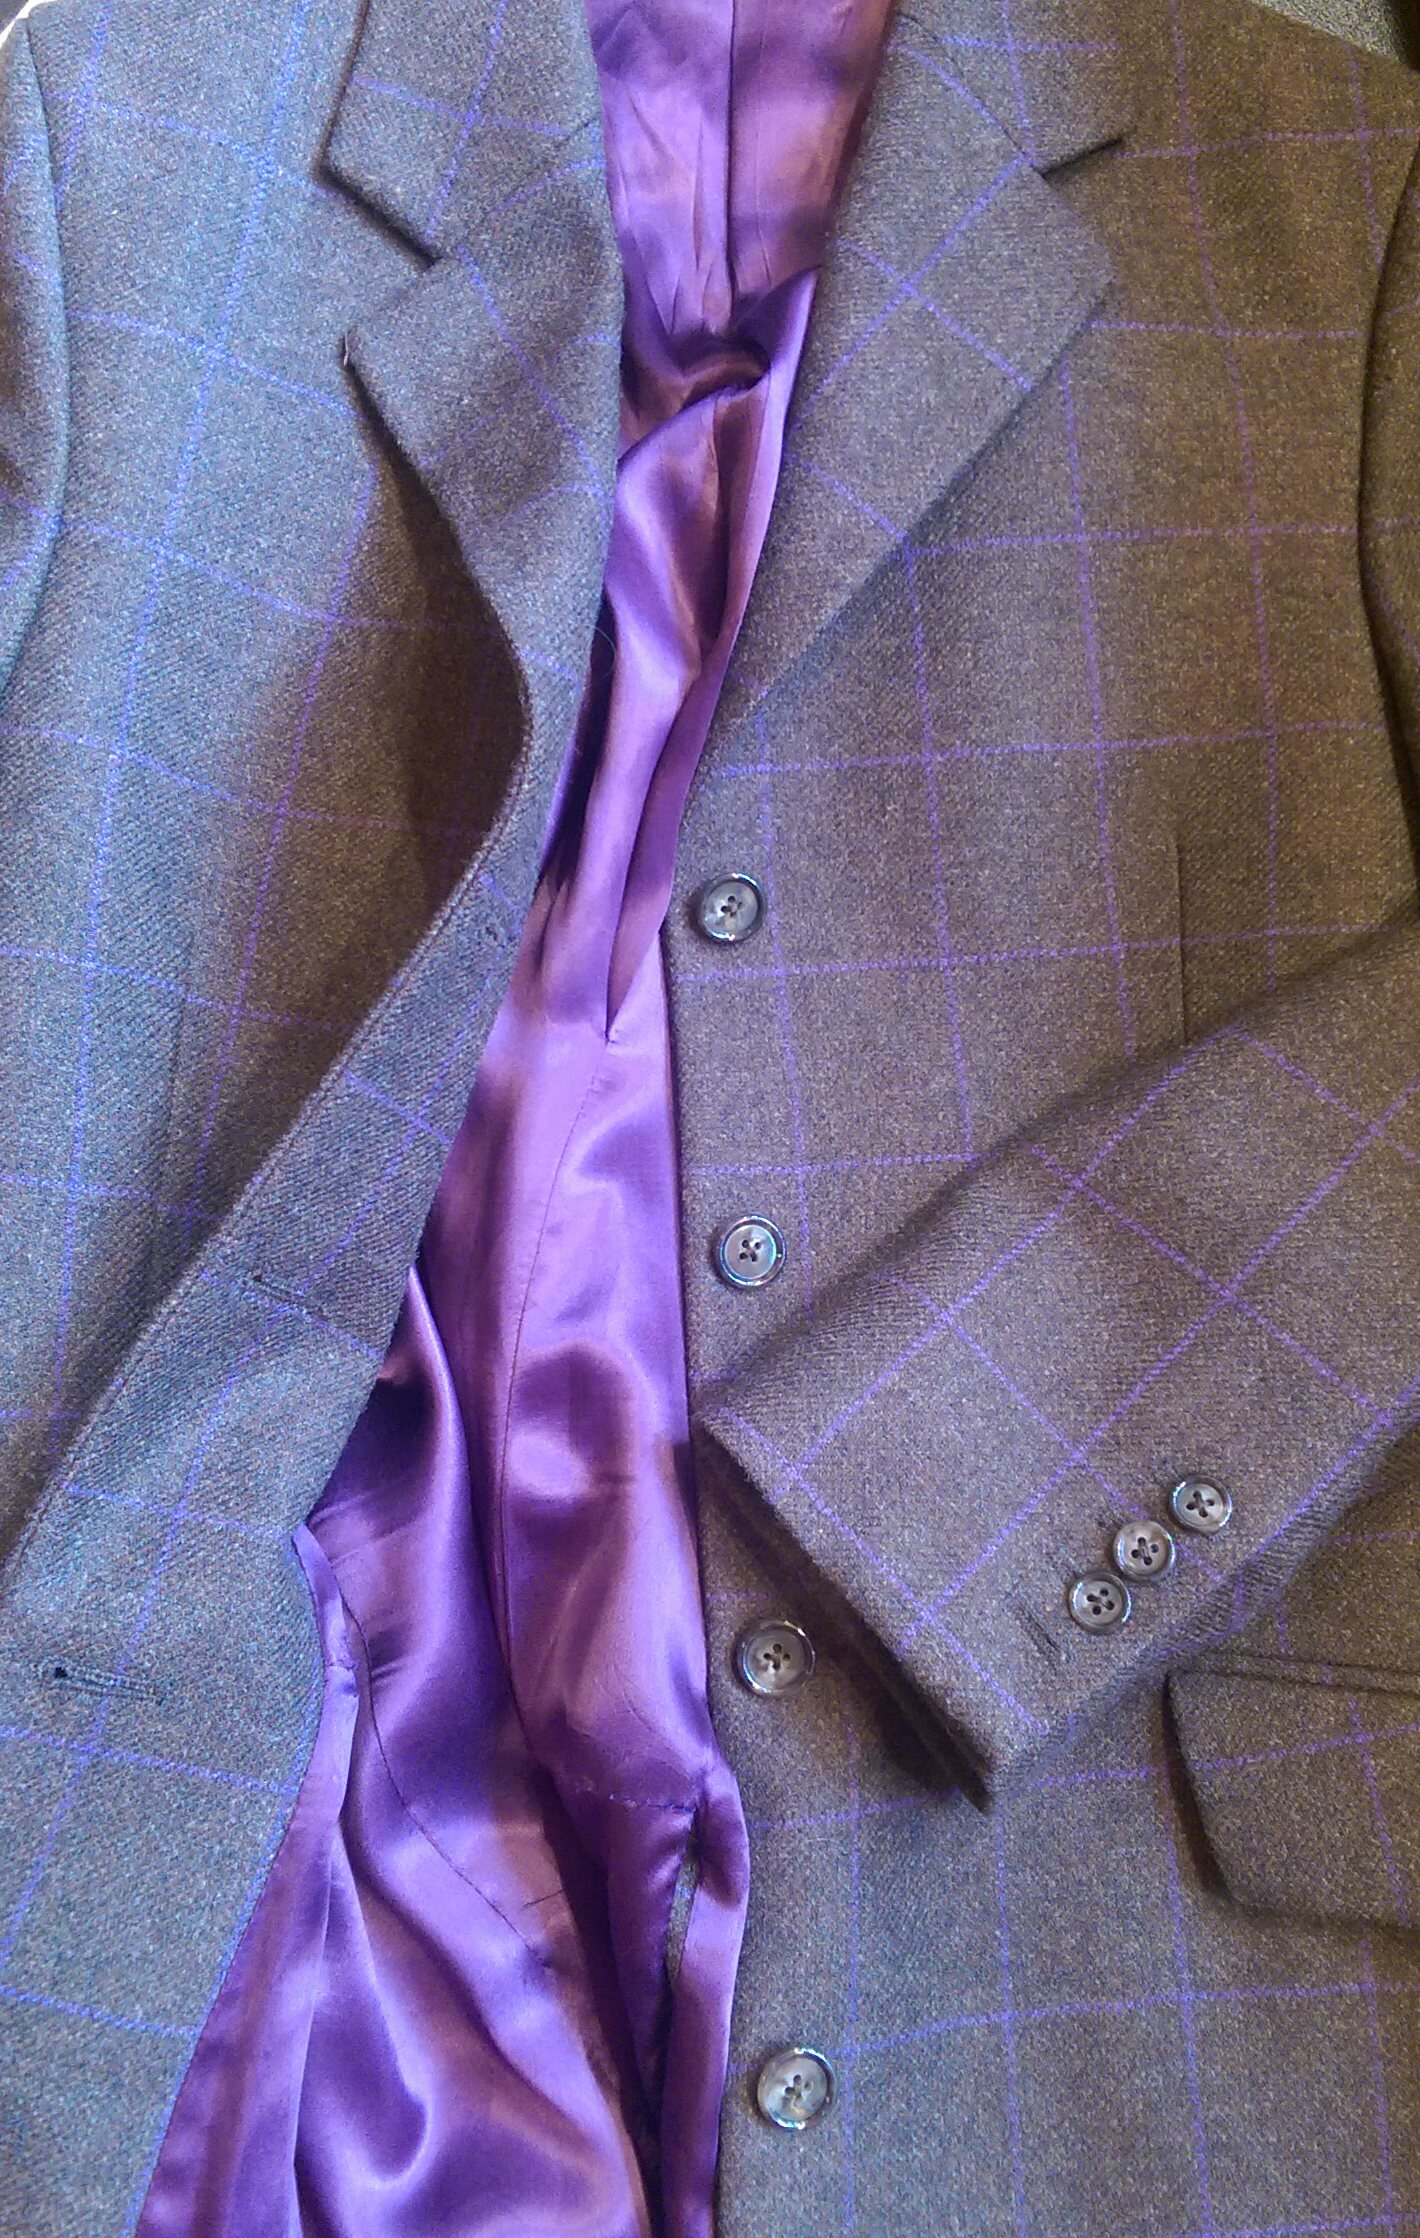 brown-purple-overcheck-tweed-long-ladies-jacket-bespoke-purple-lining-all-uk-made.jpg